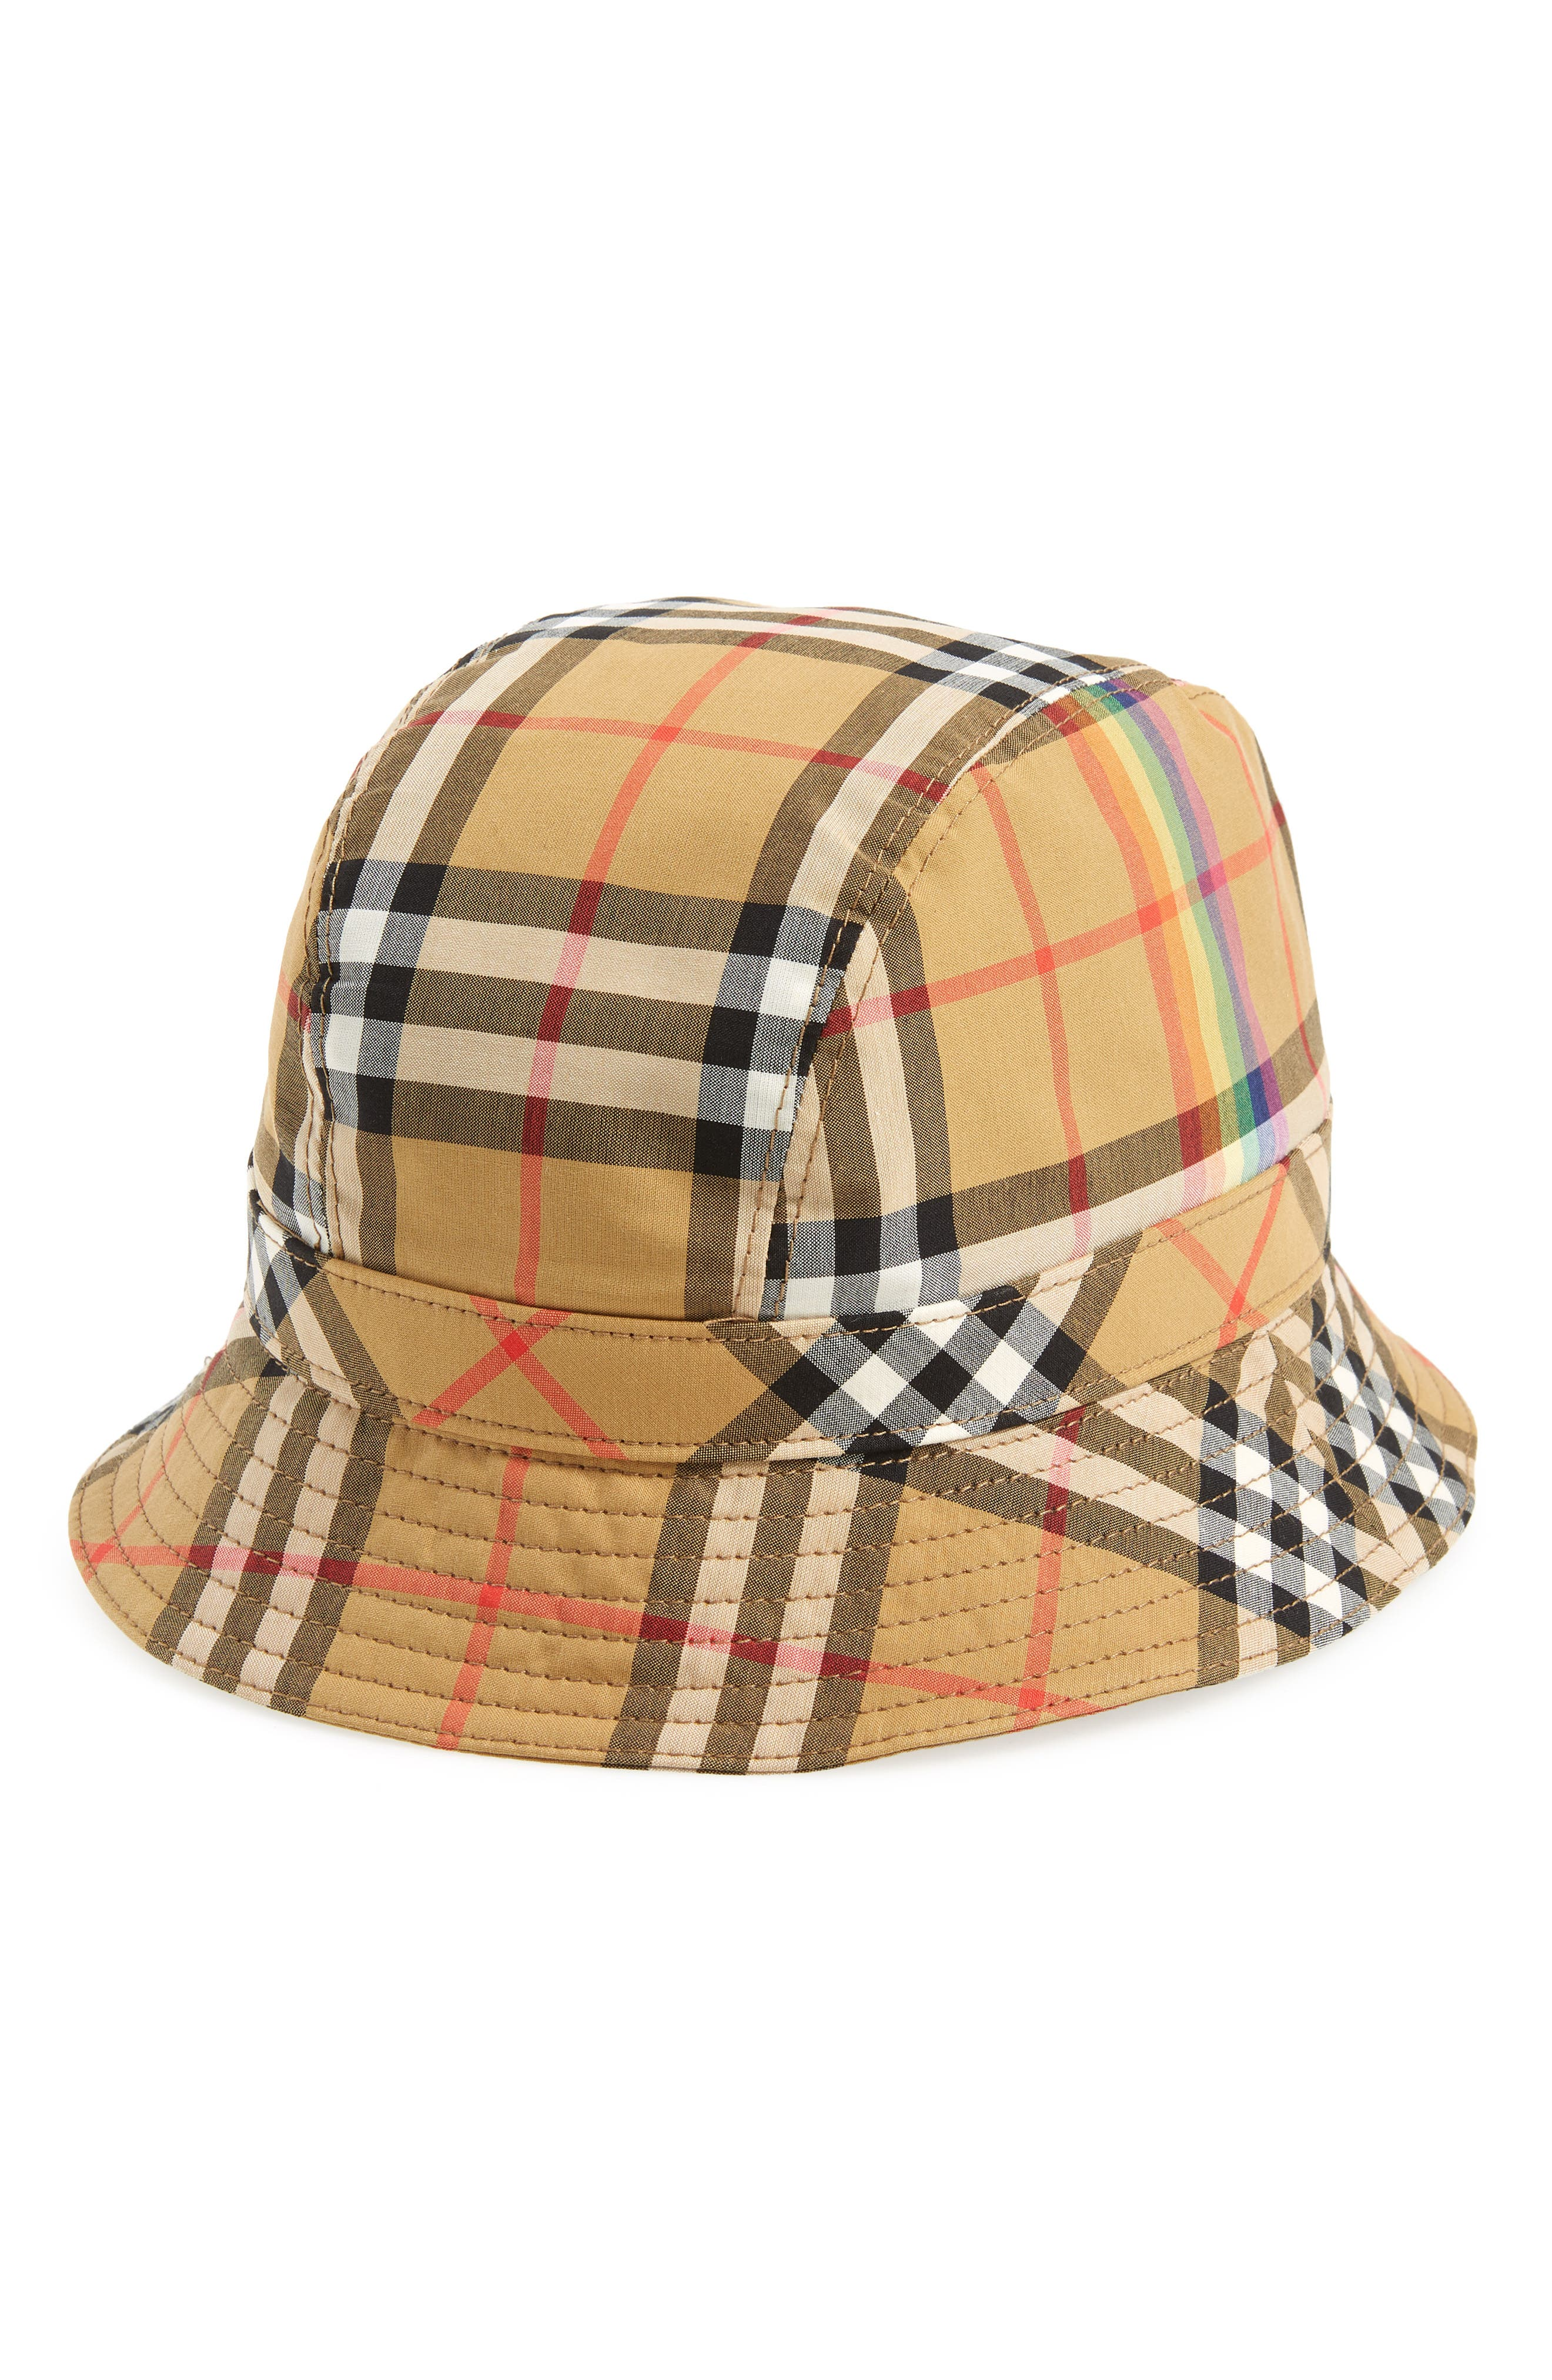 Rainbow Stripe Vintage Check Bucket Hat,                             Main thumbnail 1, color,                             ANTIQUE YELLOW/ RAINBOW